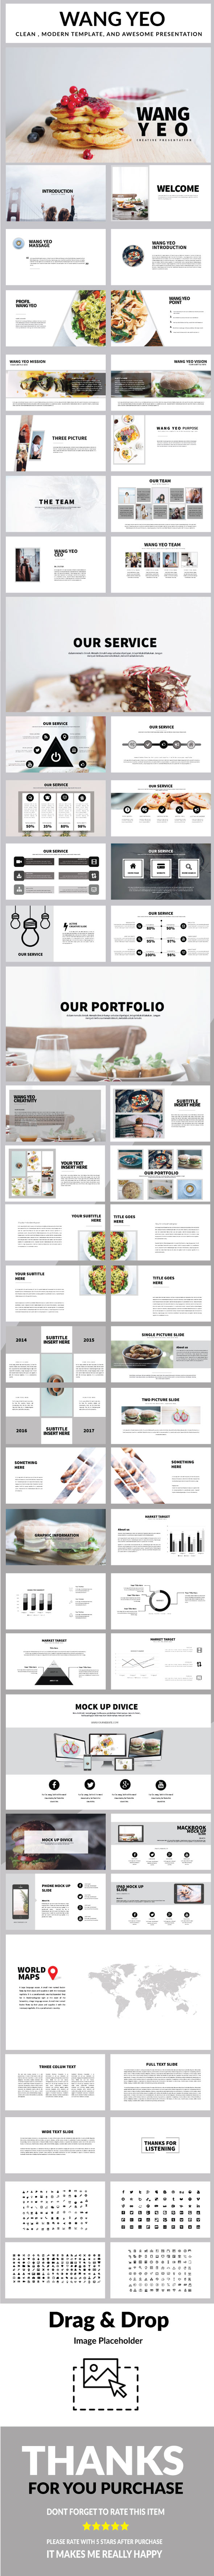 Wang yeo Multipurpose Powerpoint - PowerPoint Templates Presentation Templates